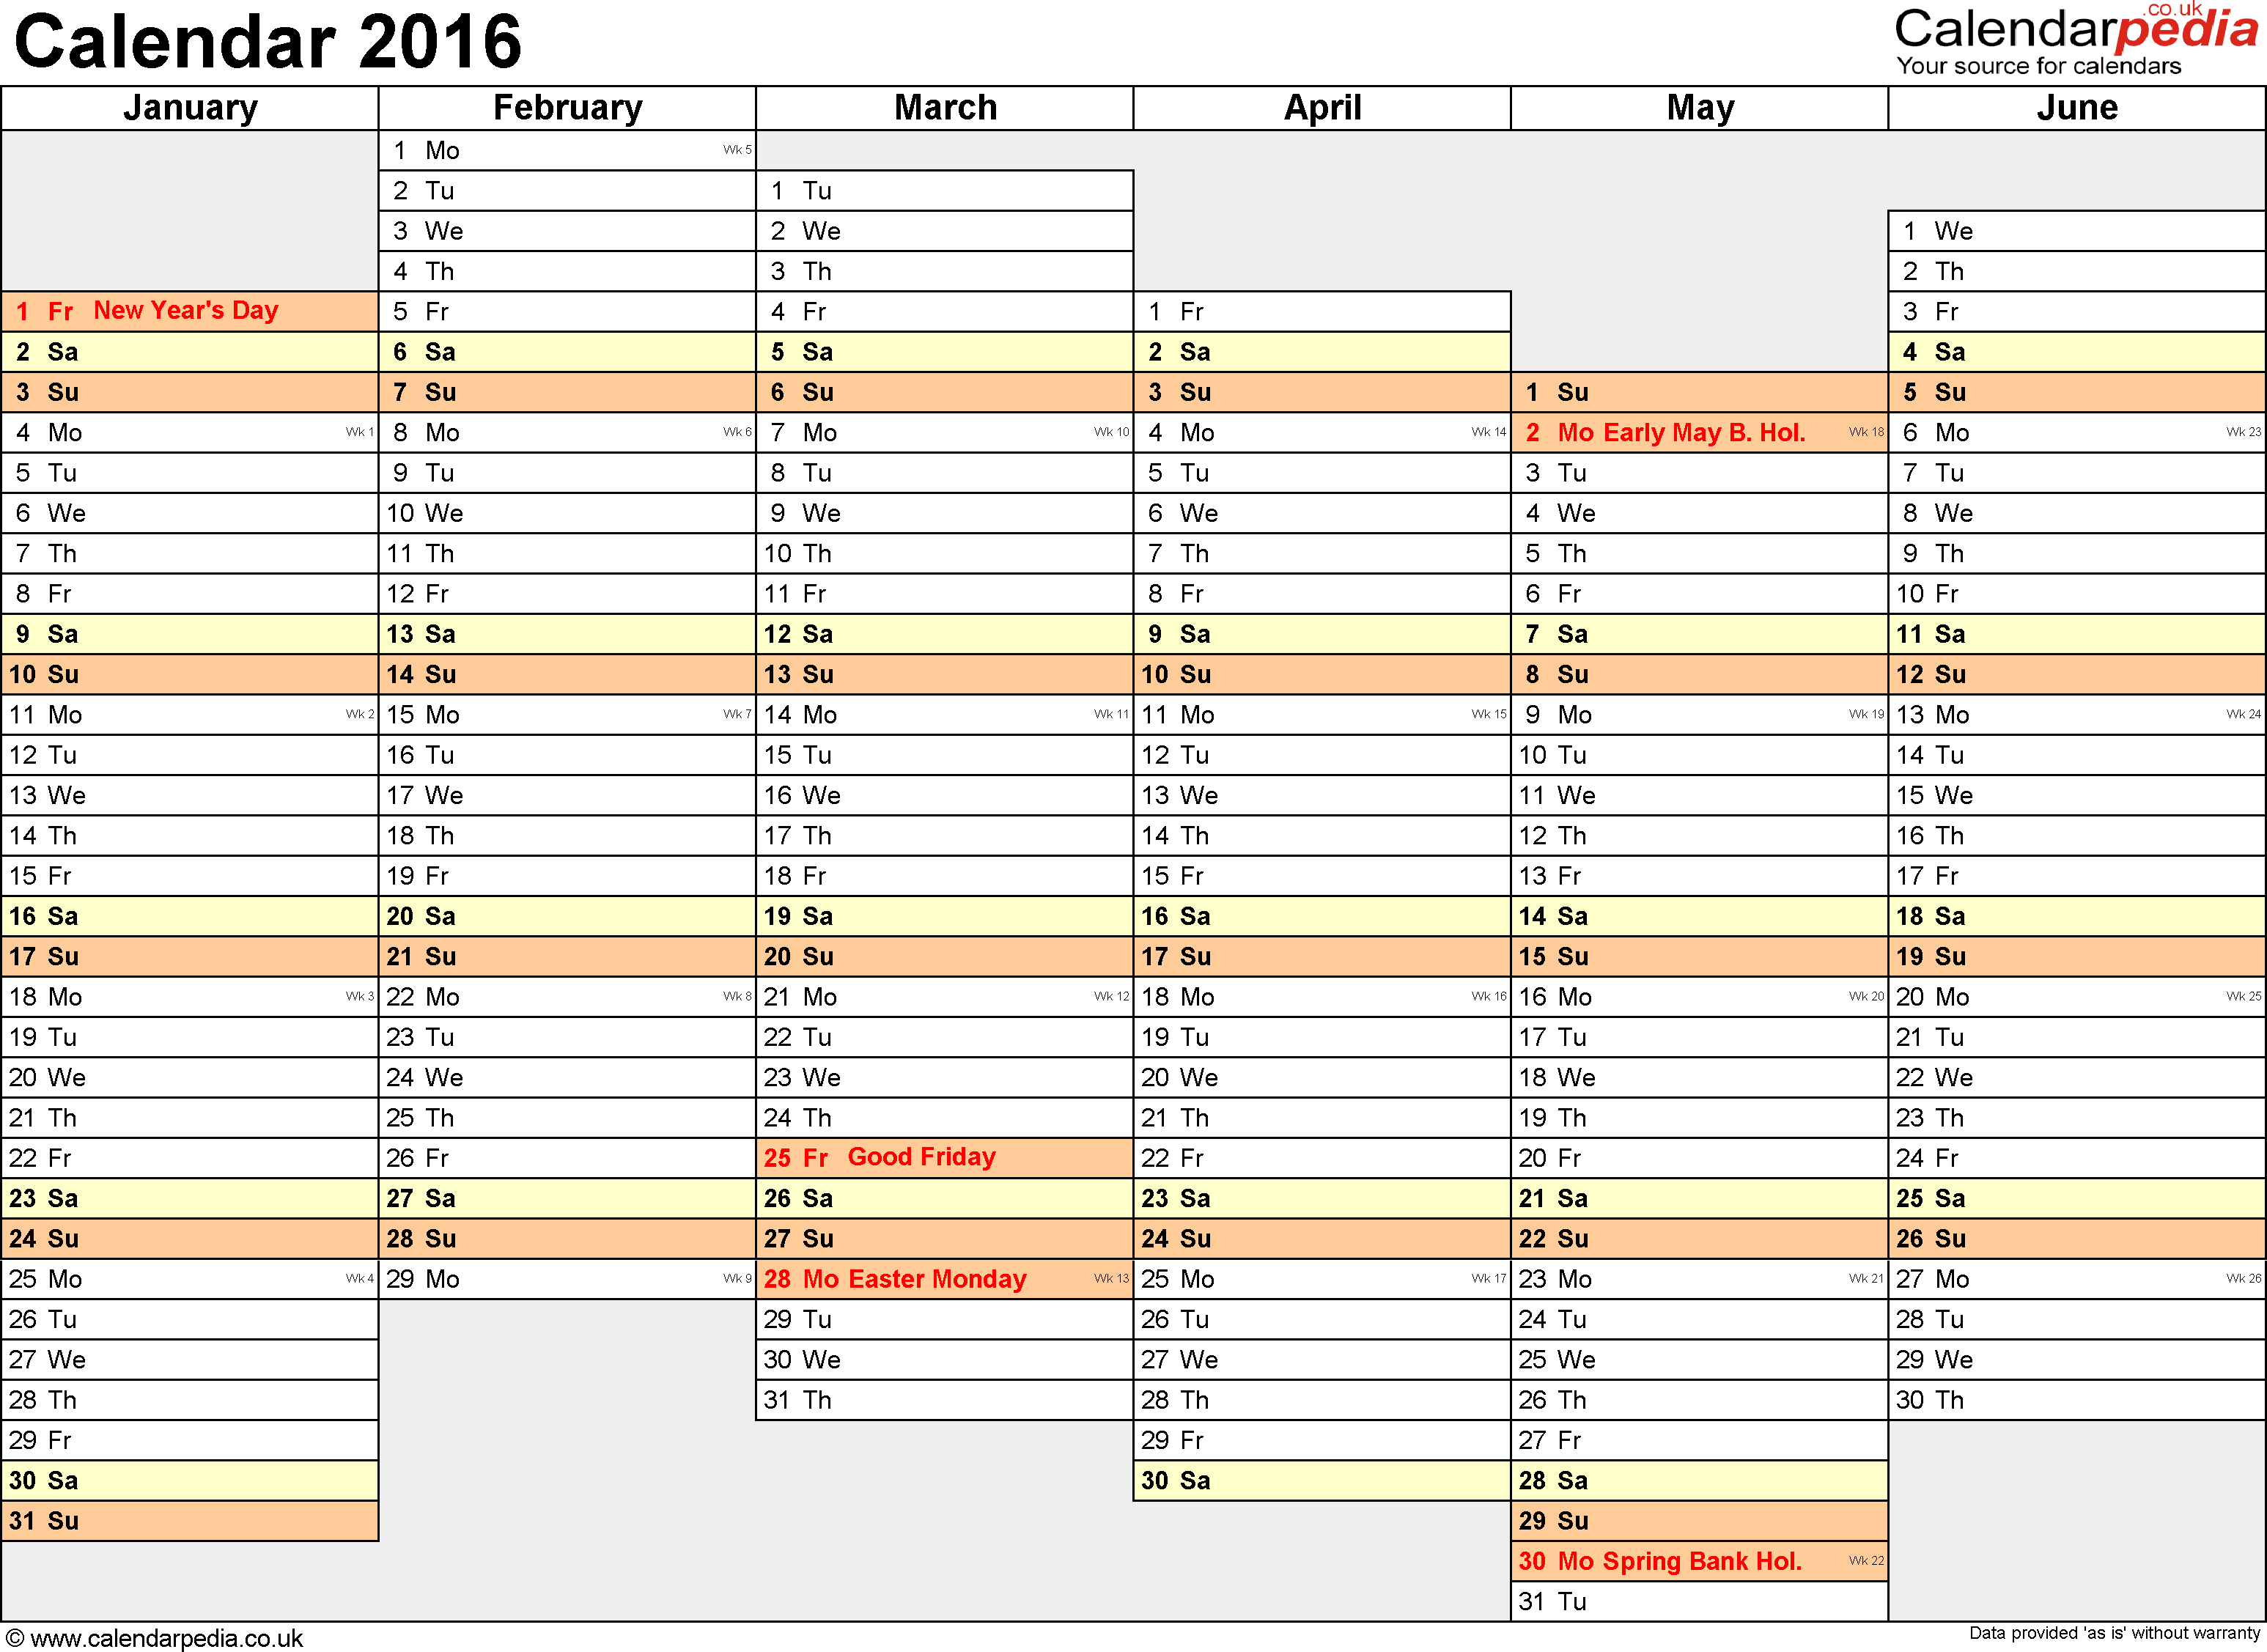 Template 4: Yearly calendar 2016 as PDF template, landscape orientation, A4, 2 pages, months horizontally, days vertically, days of the week in line, with UK bank holidays and week numbers